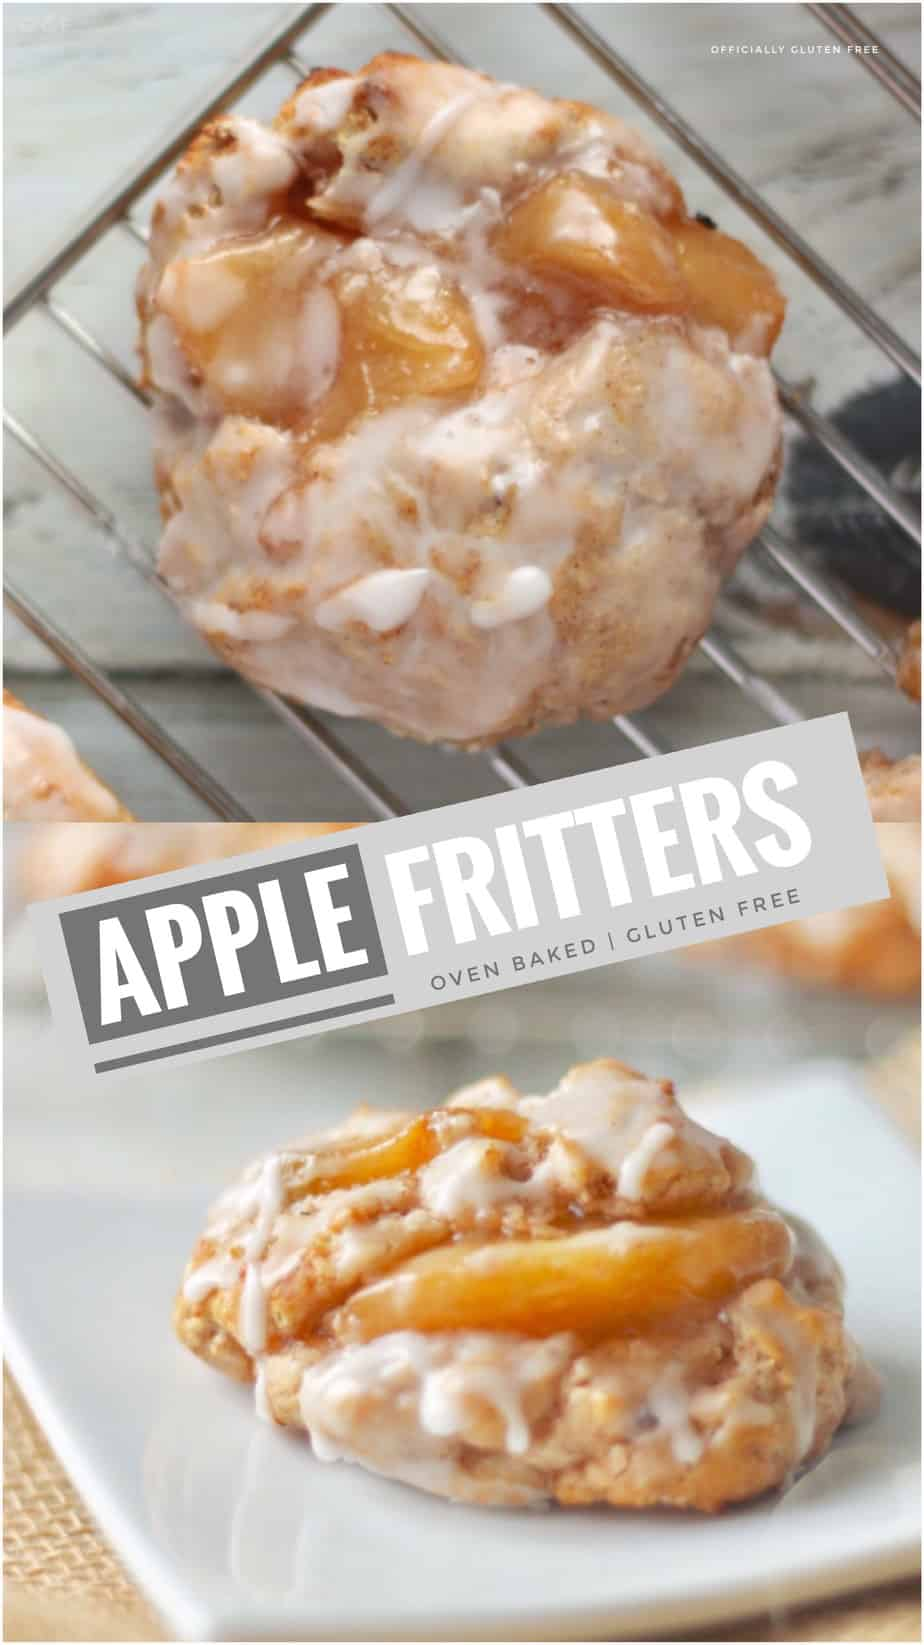 Gluten Free Oven Baked Apple Fritters